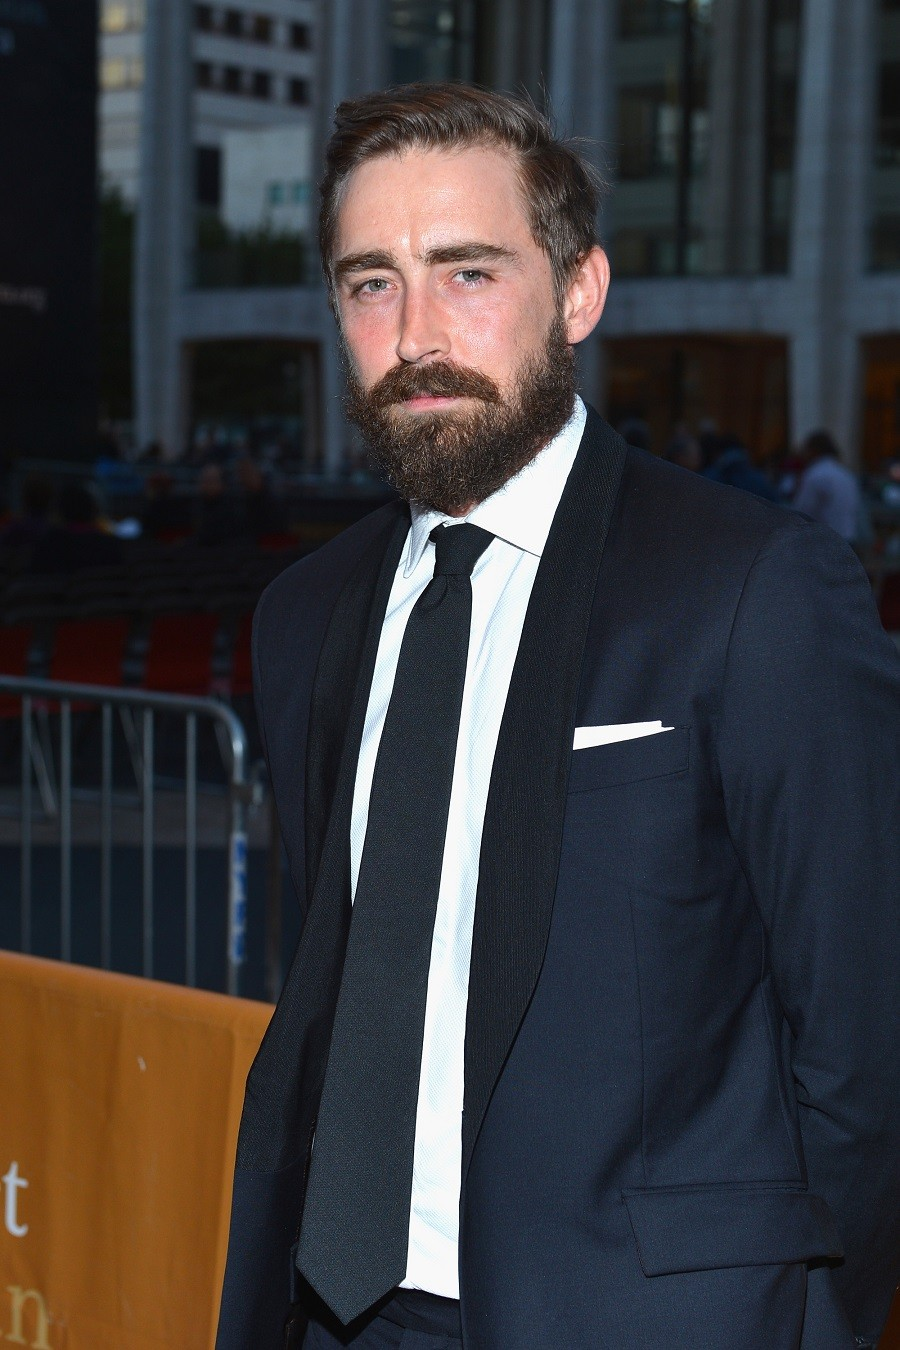 Actor Lee Pace attends the 2012 Metropolitan Opera Season Opening Night